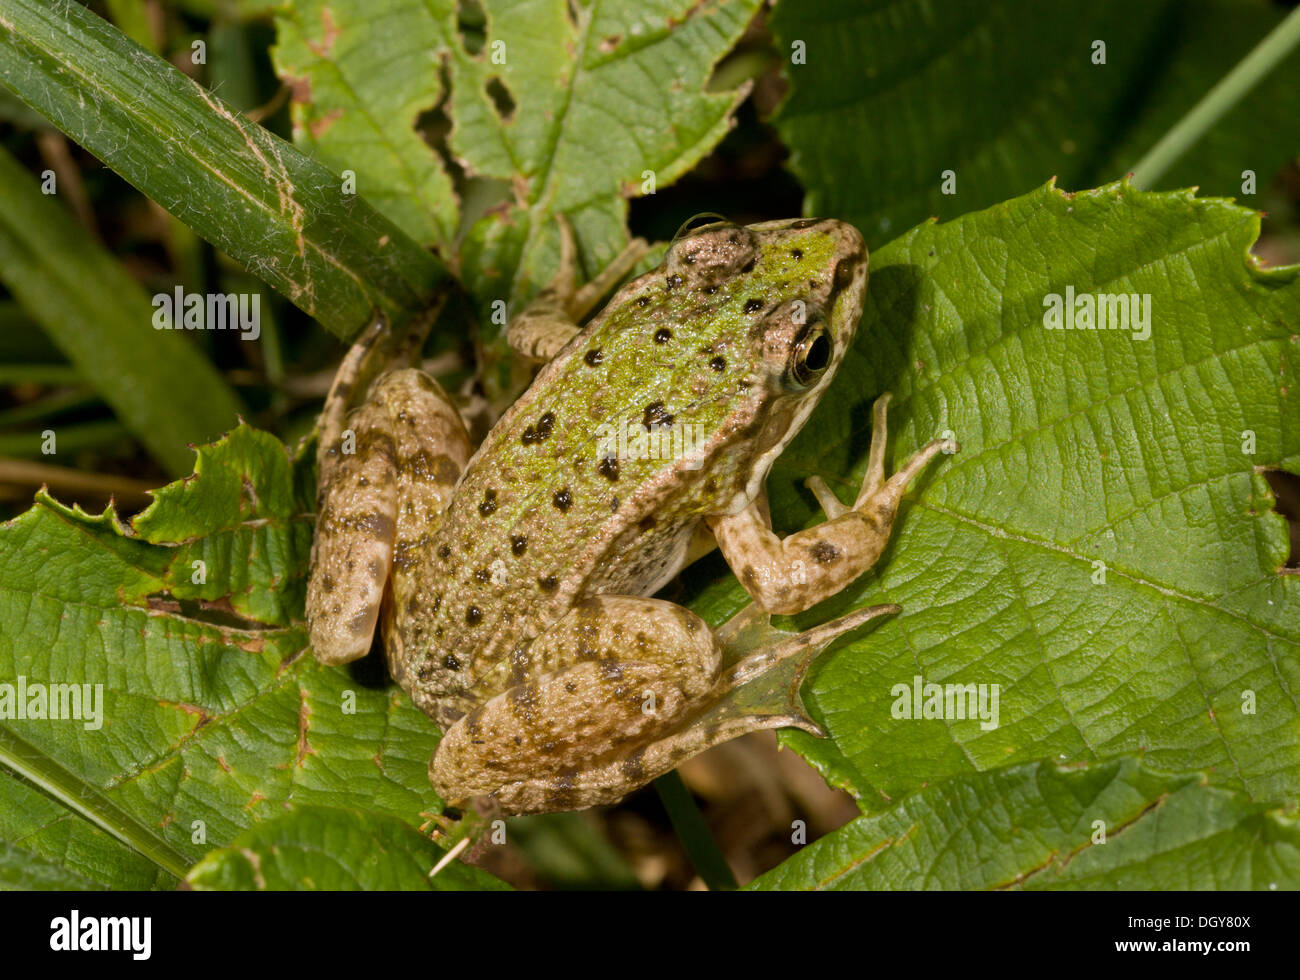 Young Edible Frog Pelophylax kl. esculentus, (Rana esculenta) Brenne, France. - Stock Image